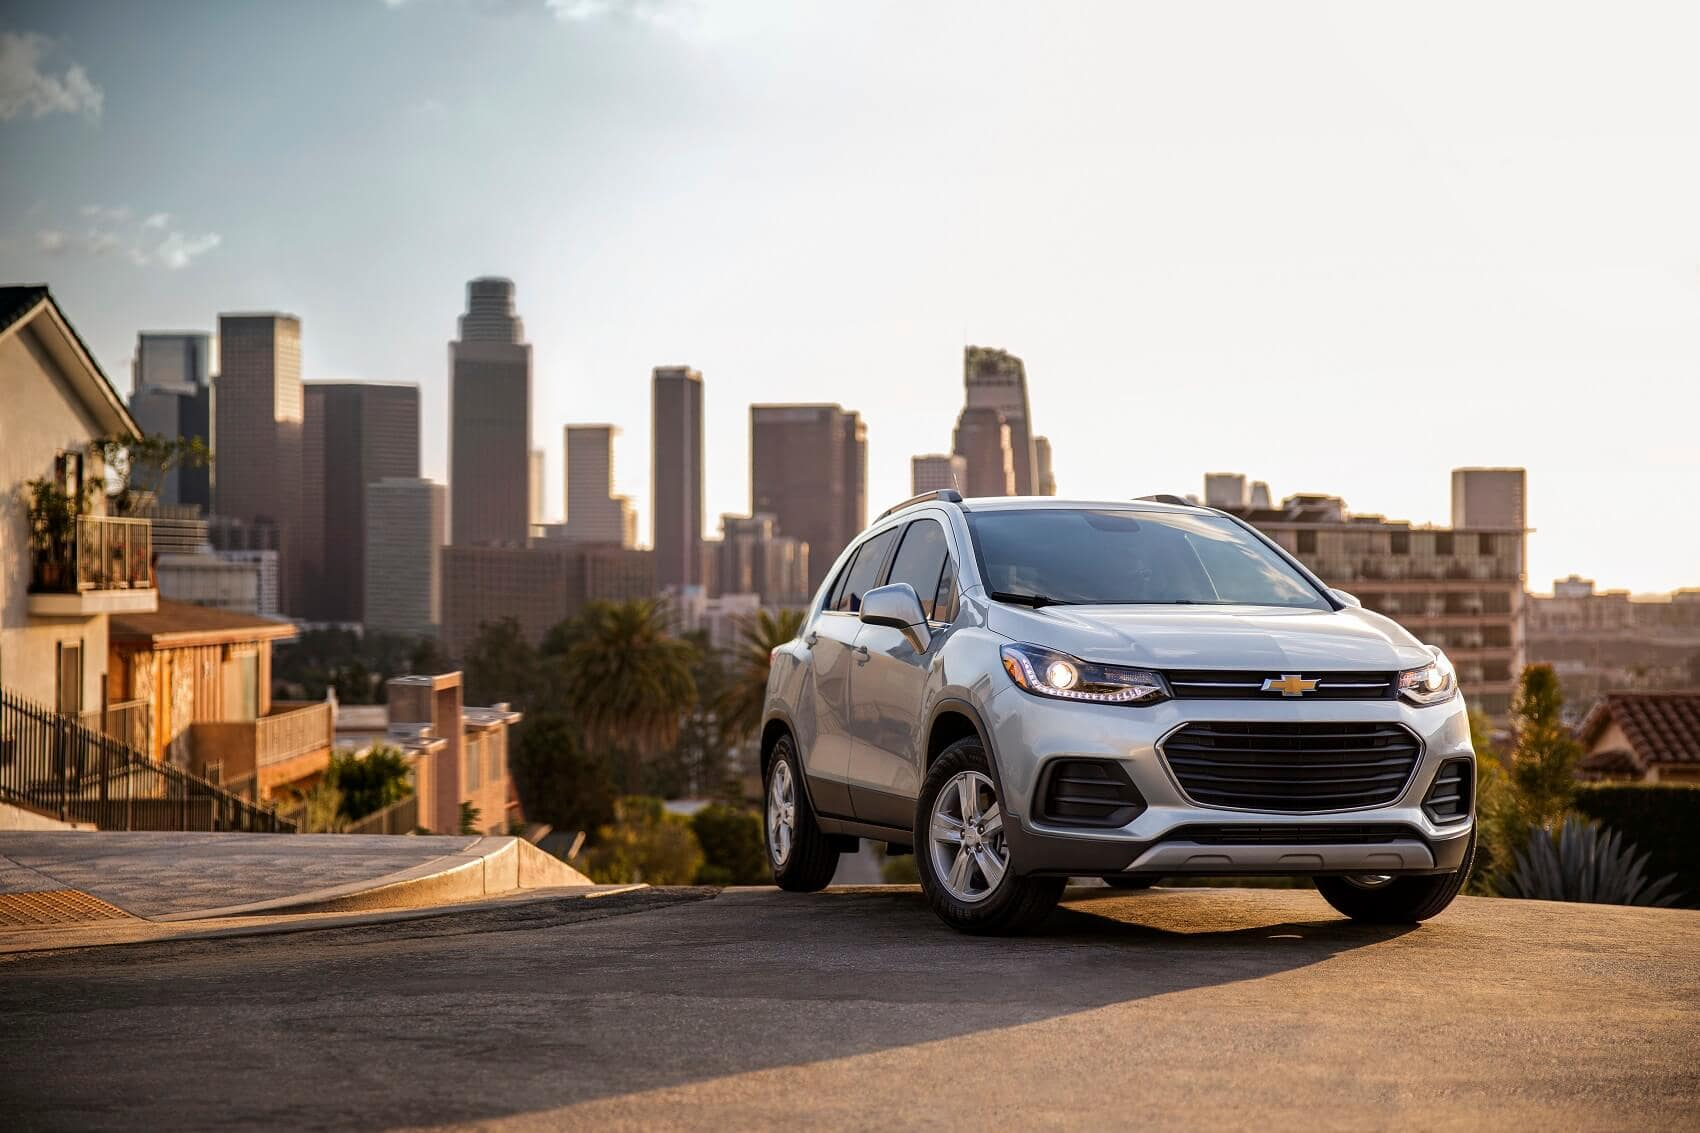 FINDING THE RIGHT CHEVY FOR YOU